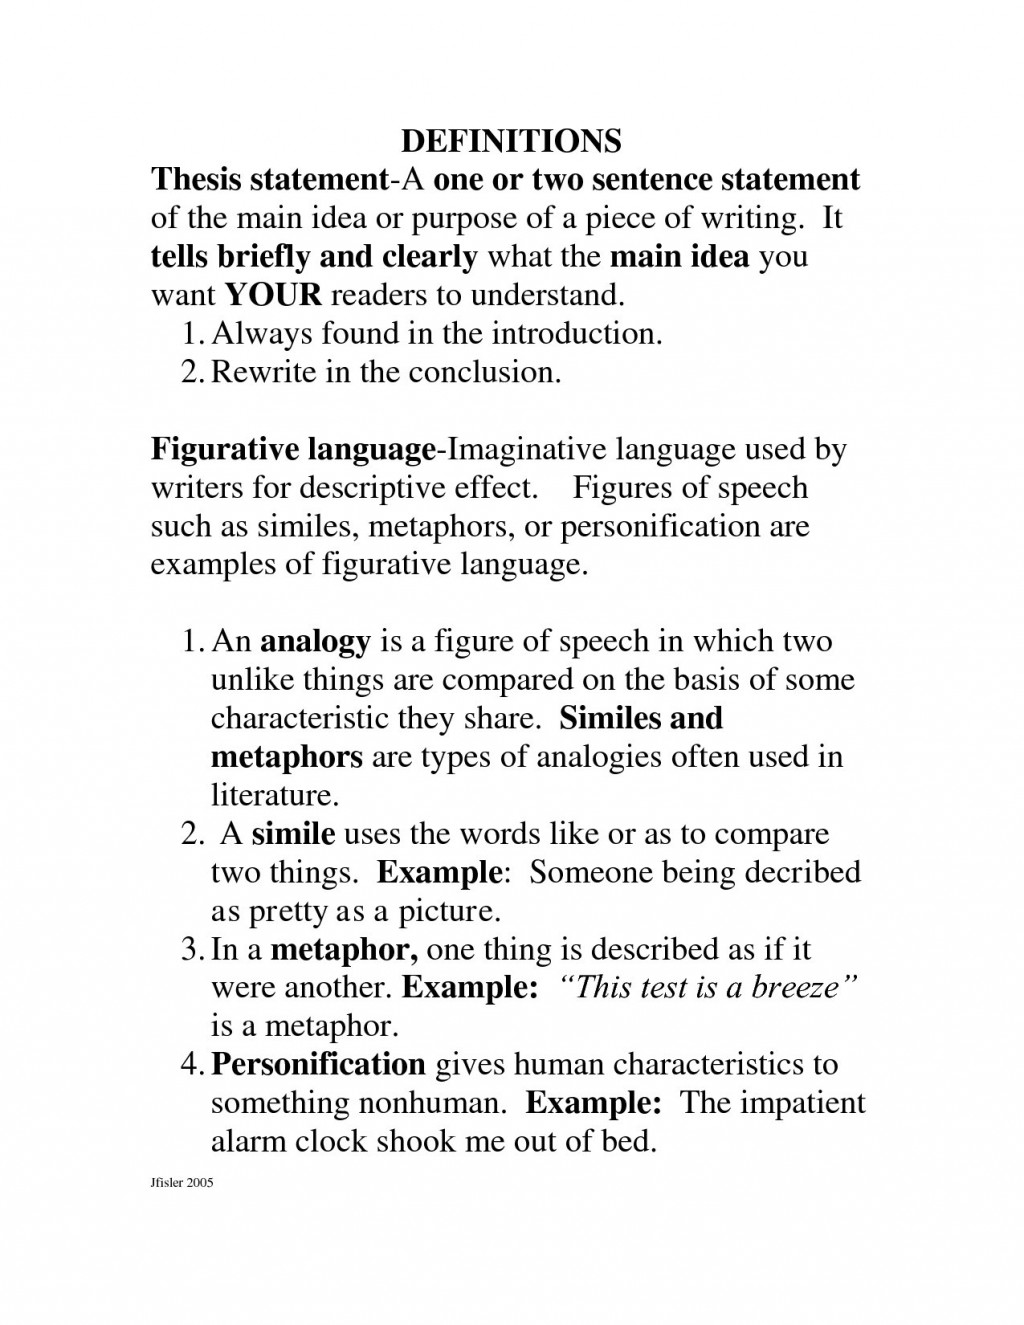 004 Thesis Statement Define Q4jqev1l Essay Template Process Example Research Paper Unusual And Large